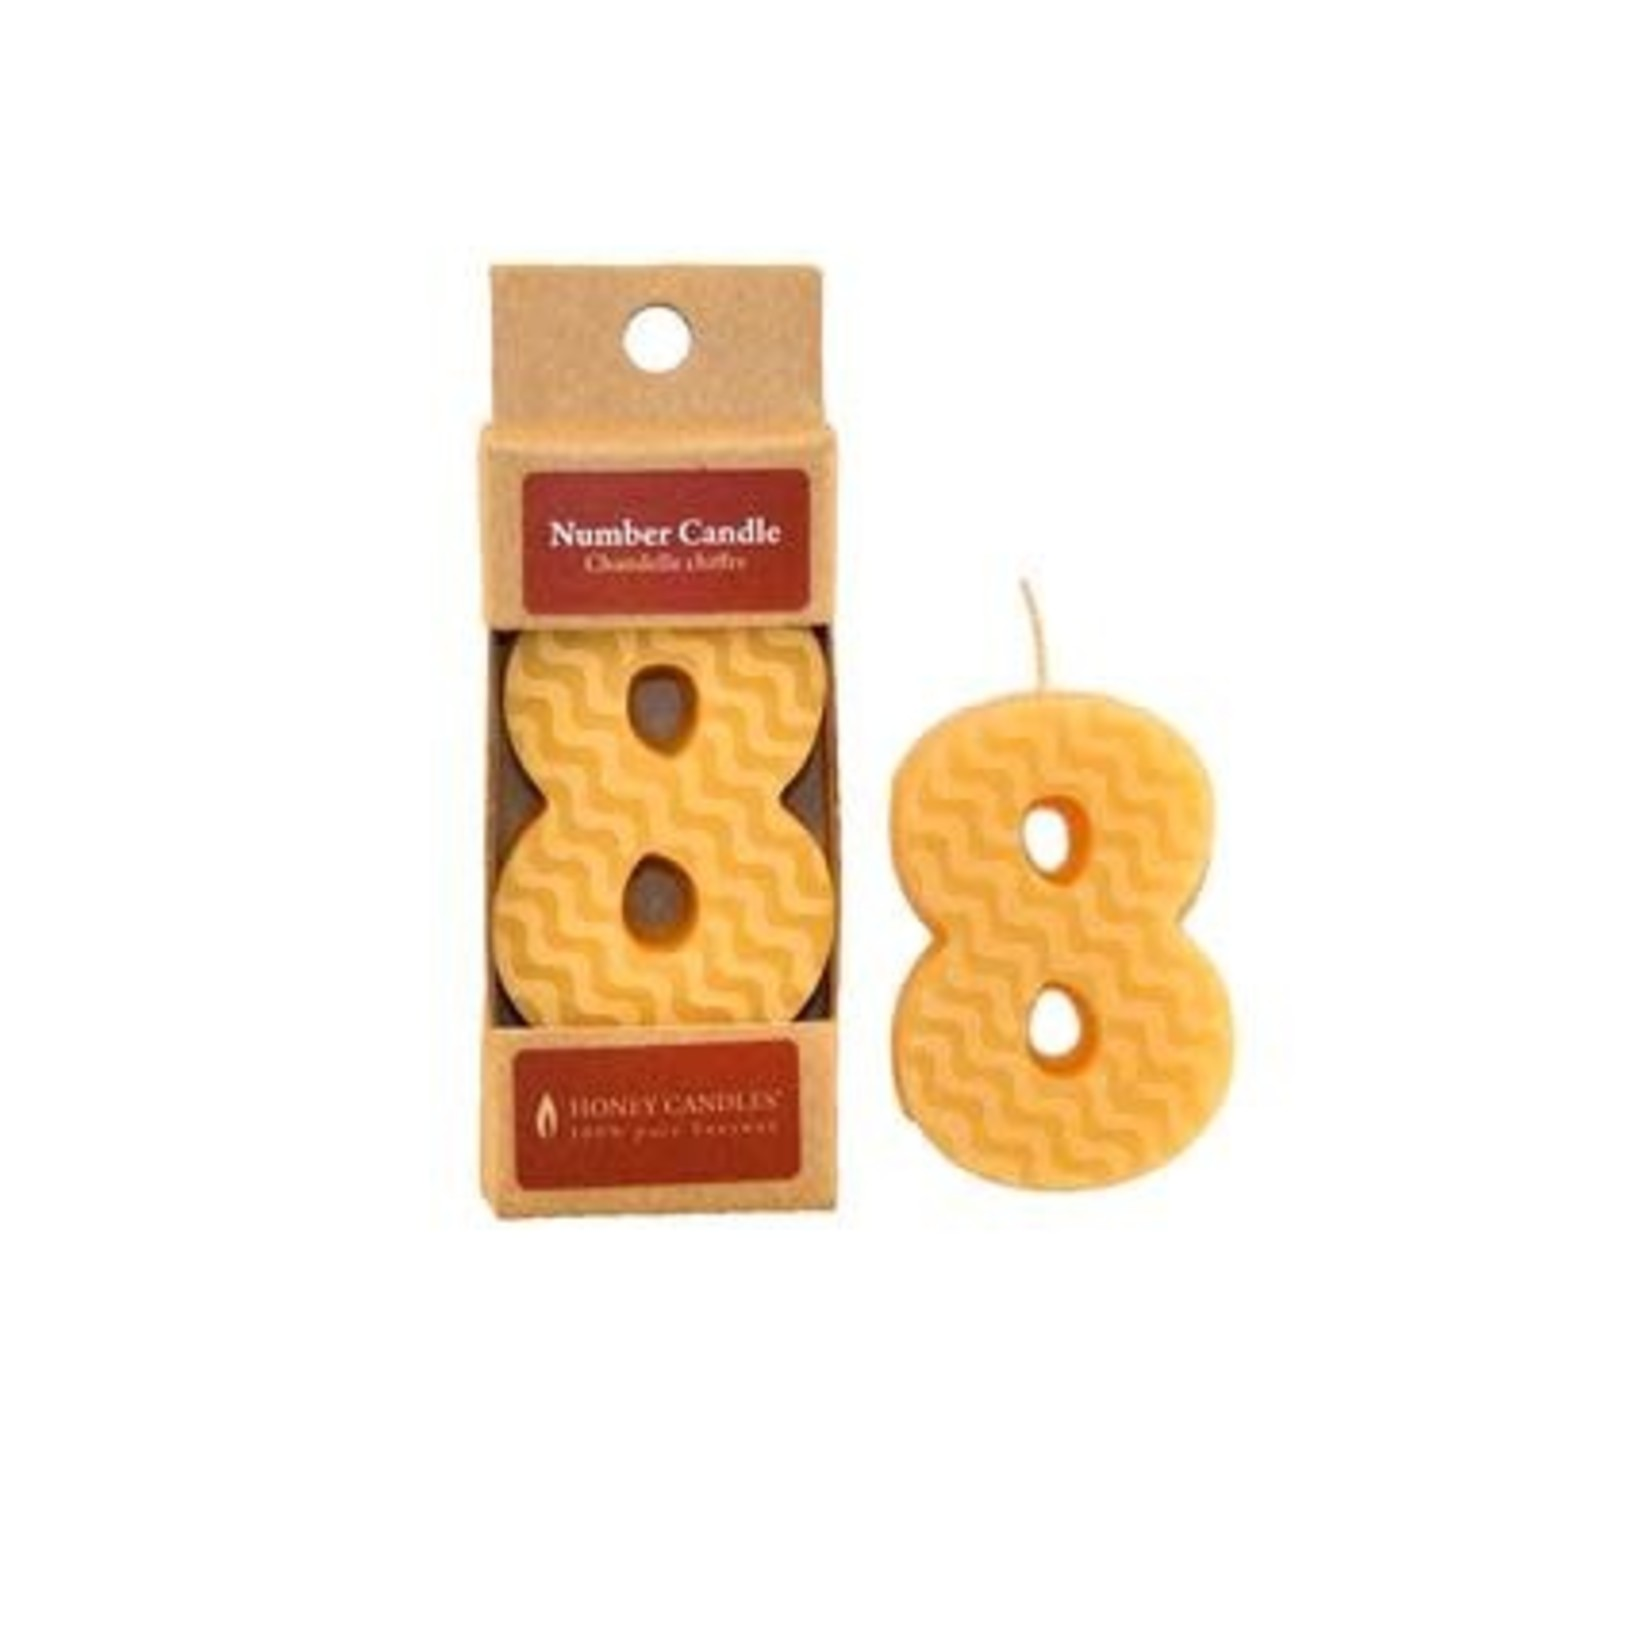 HONEY CANDLES NUMBER 8 BEESWAX CANDLE